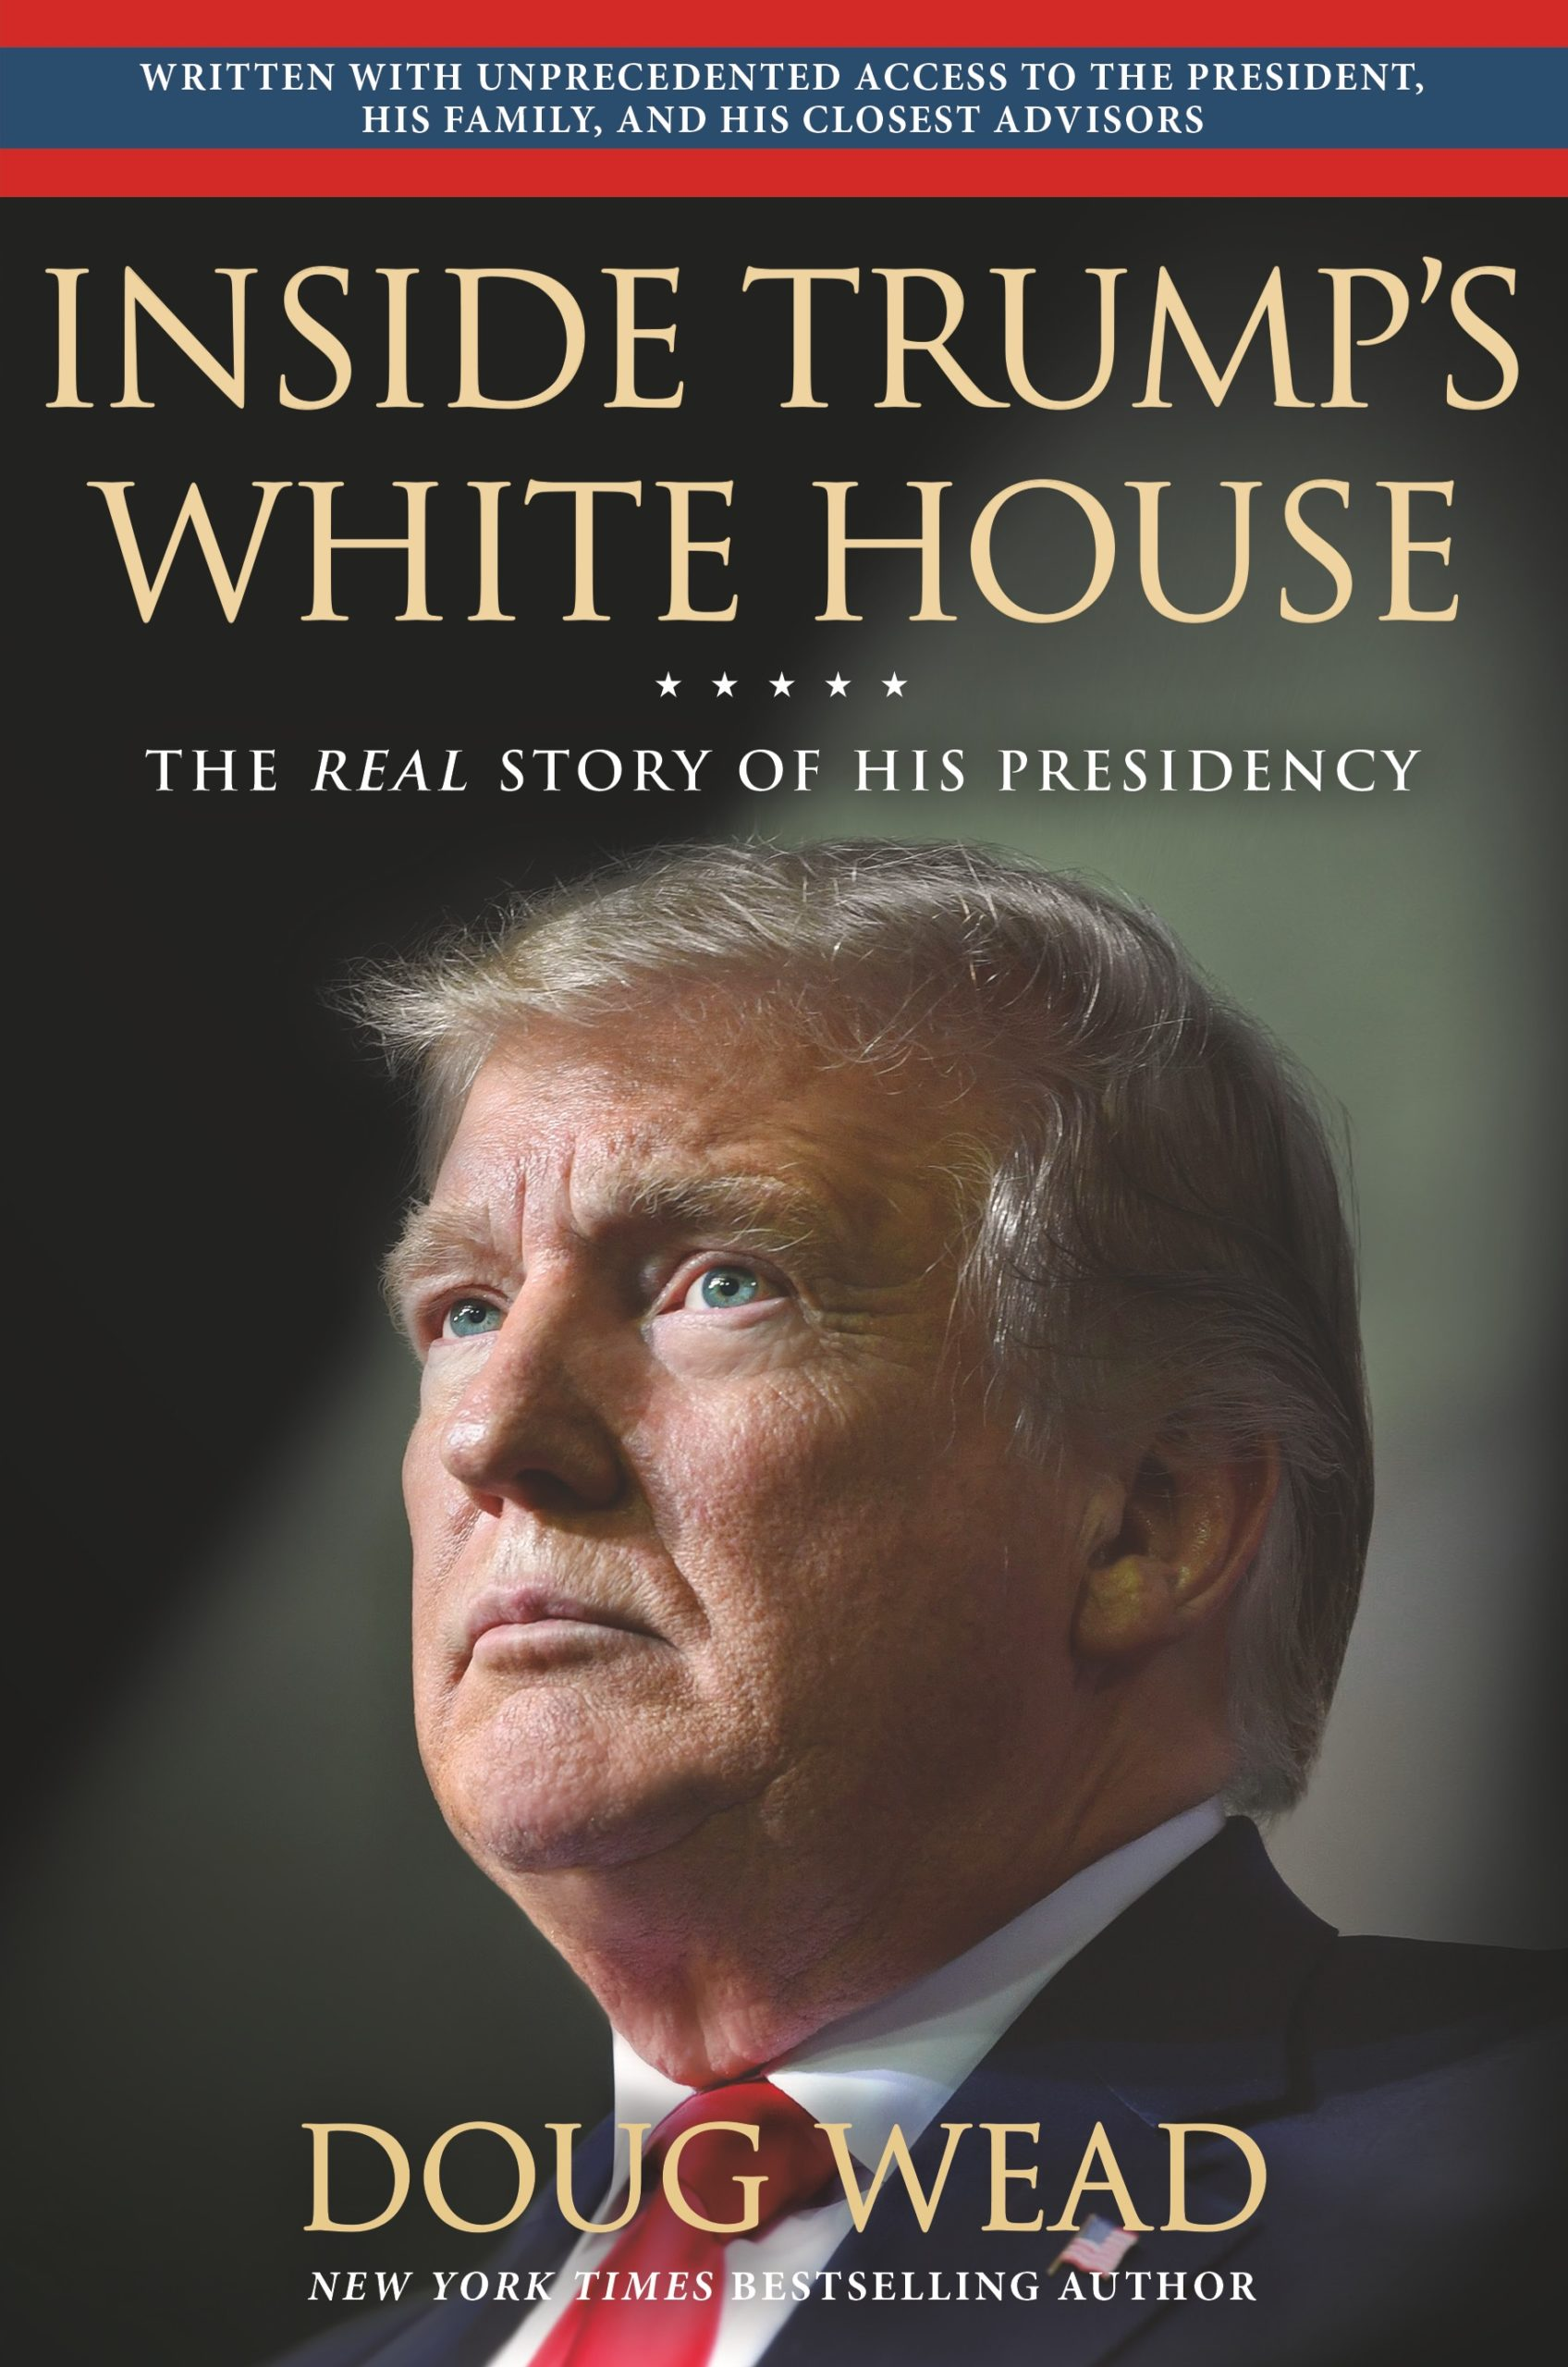 Jpeg of the cover of Inside Trump's White House.